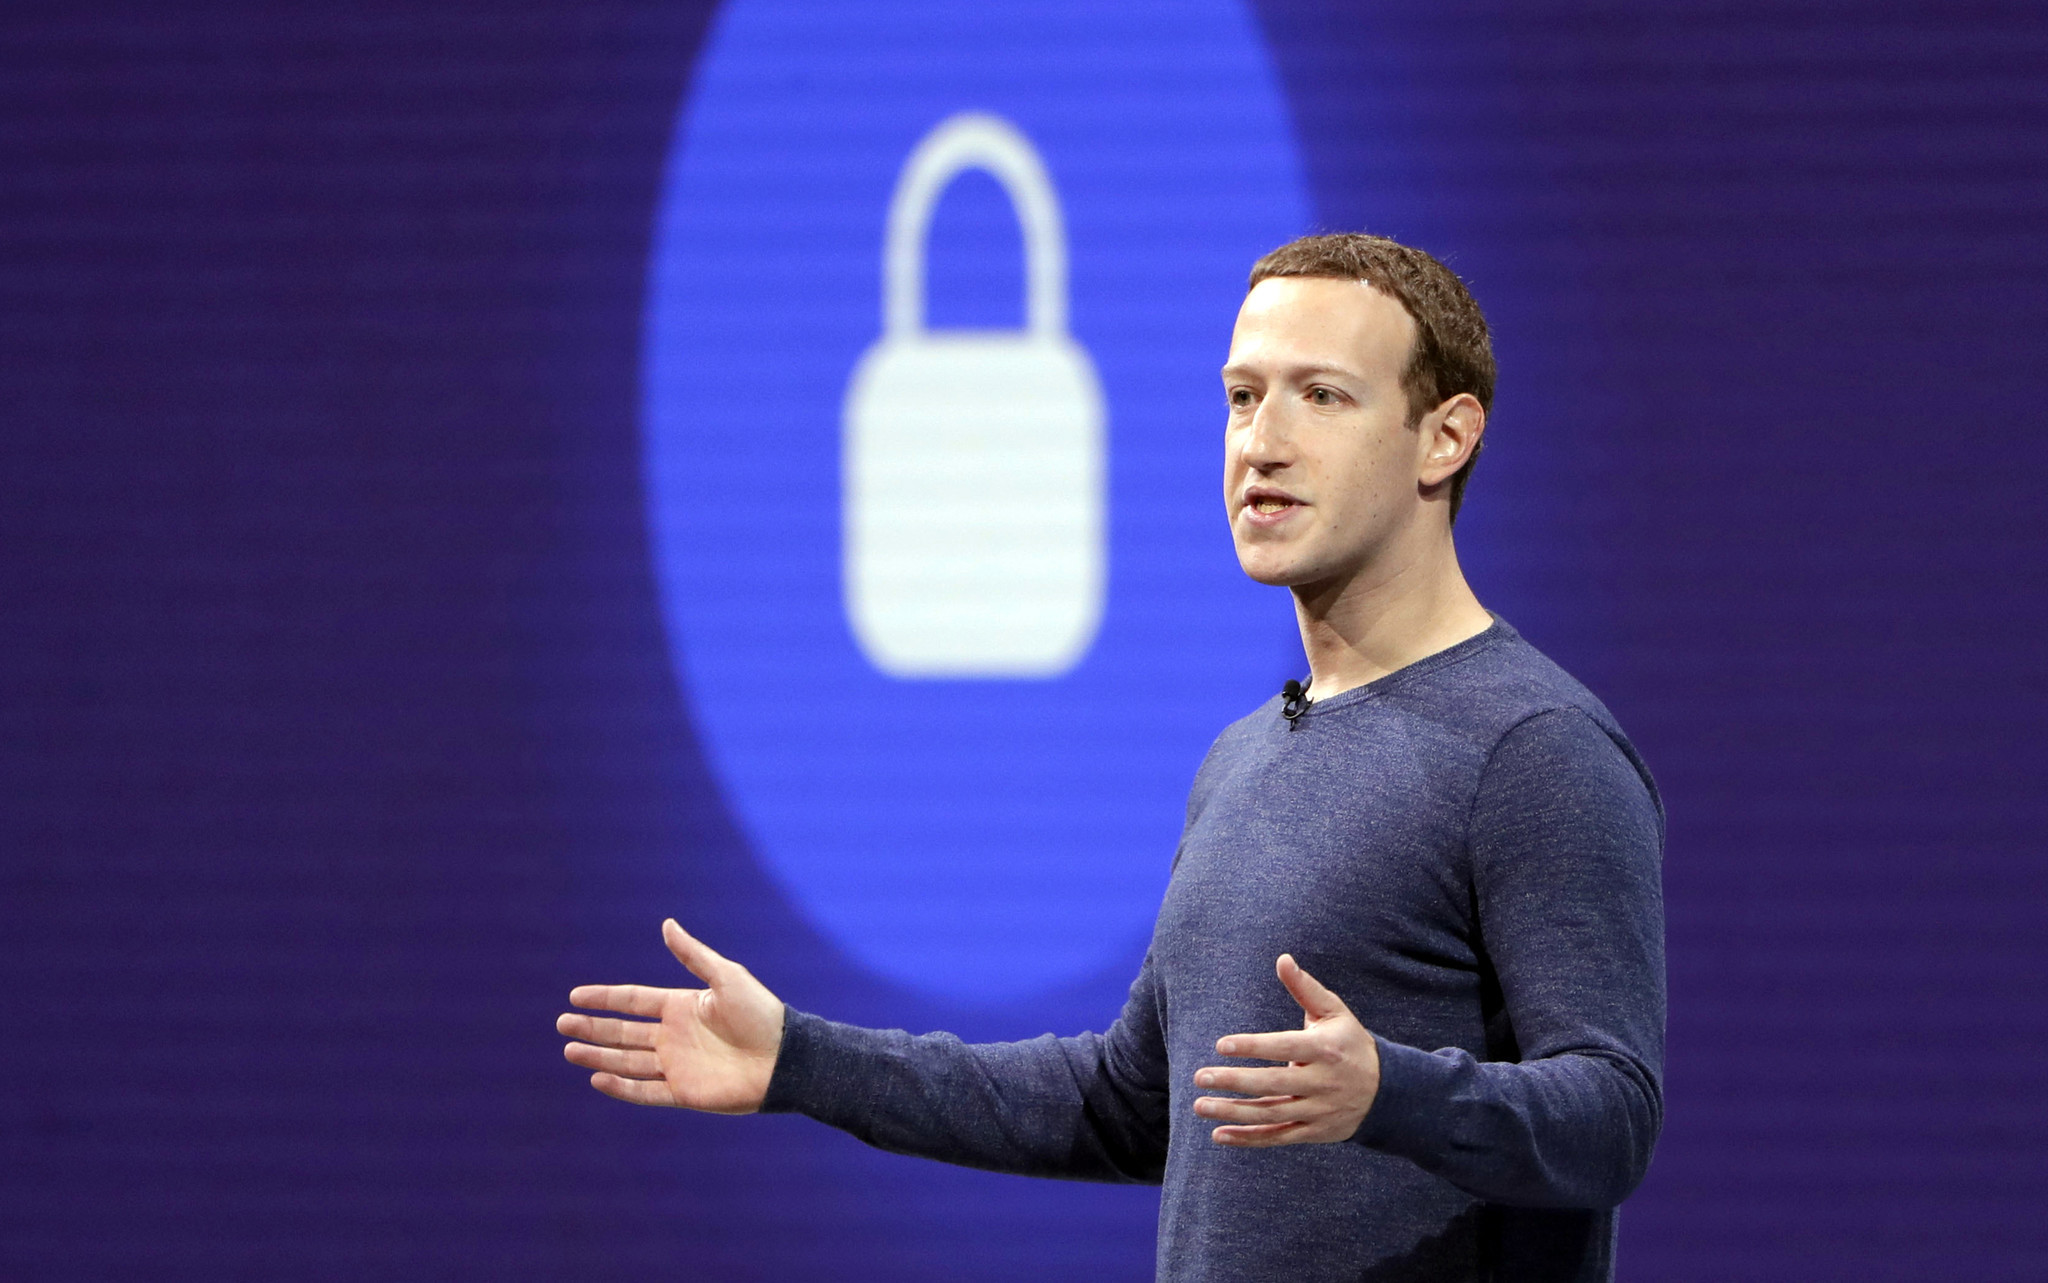 Facebook intentionally violated privacy laws, British lawmakers say